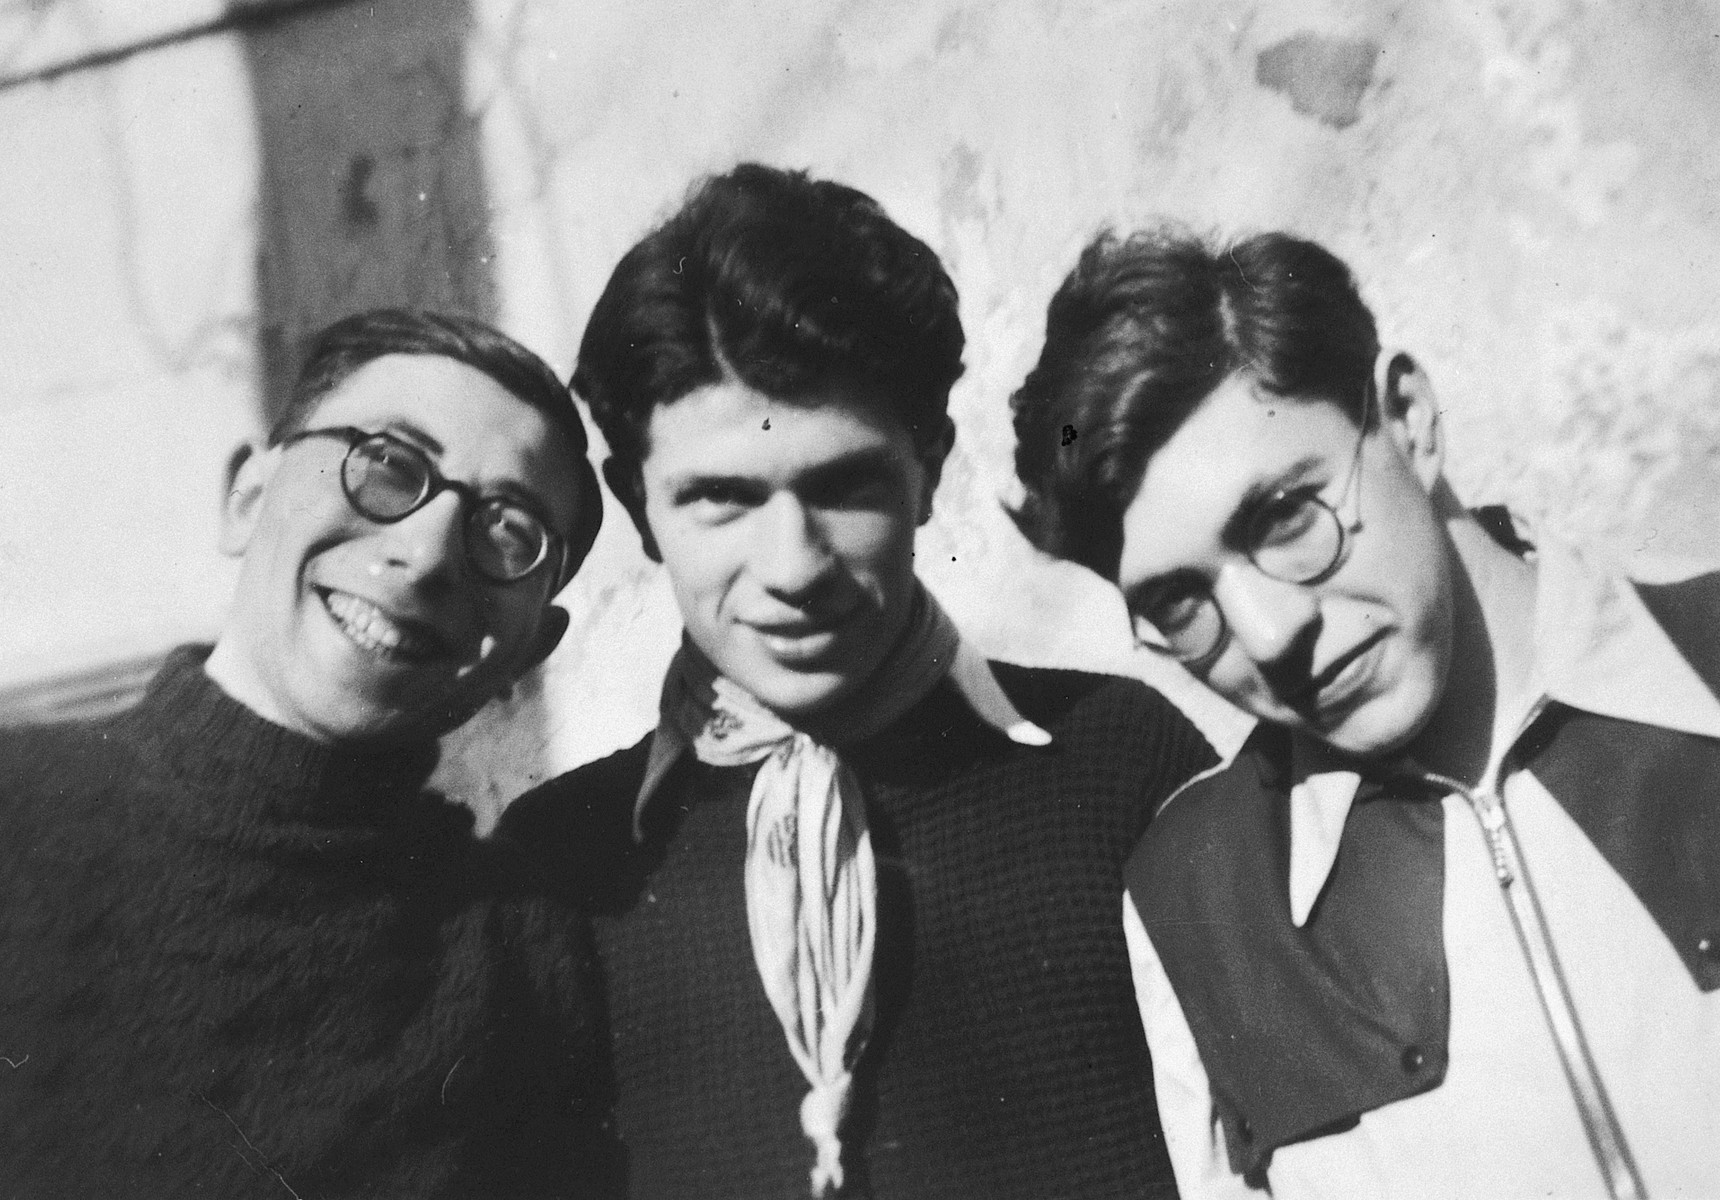 Three members of the Zionist youth movement Techelet Lavan (Blue-White).  Pictured are Shmuel Katz (middle) and Arje Stein (right).